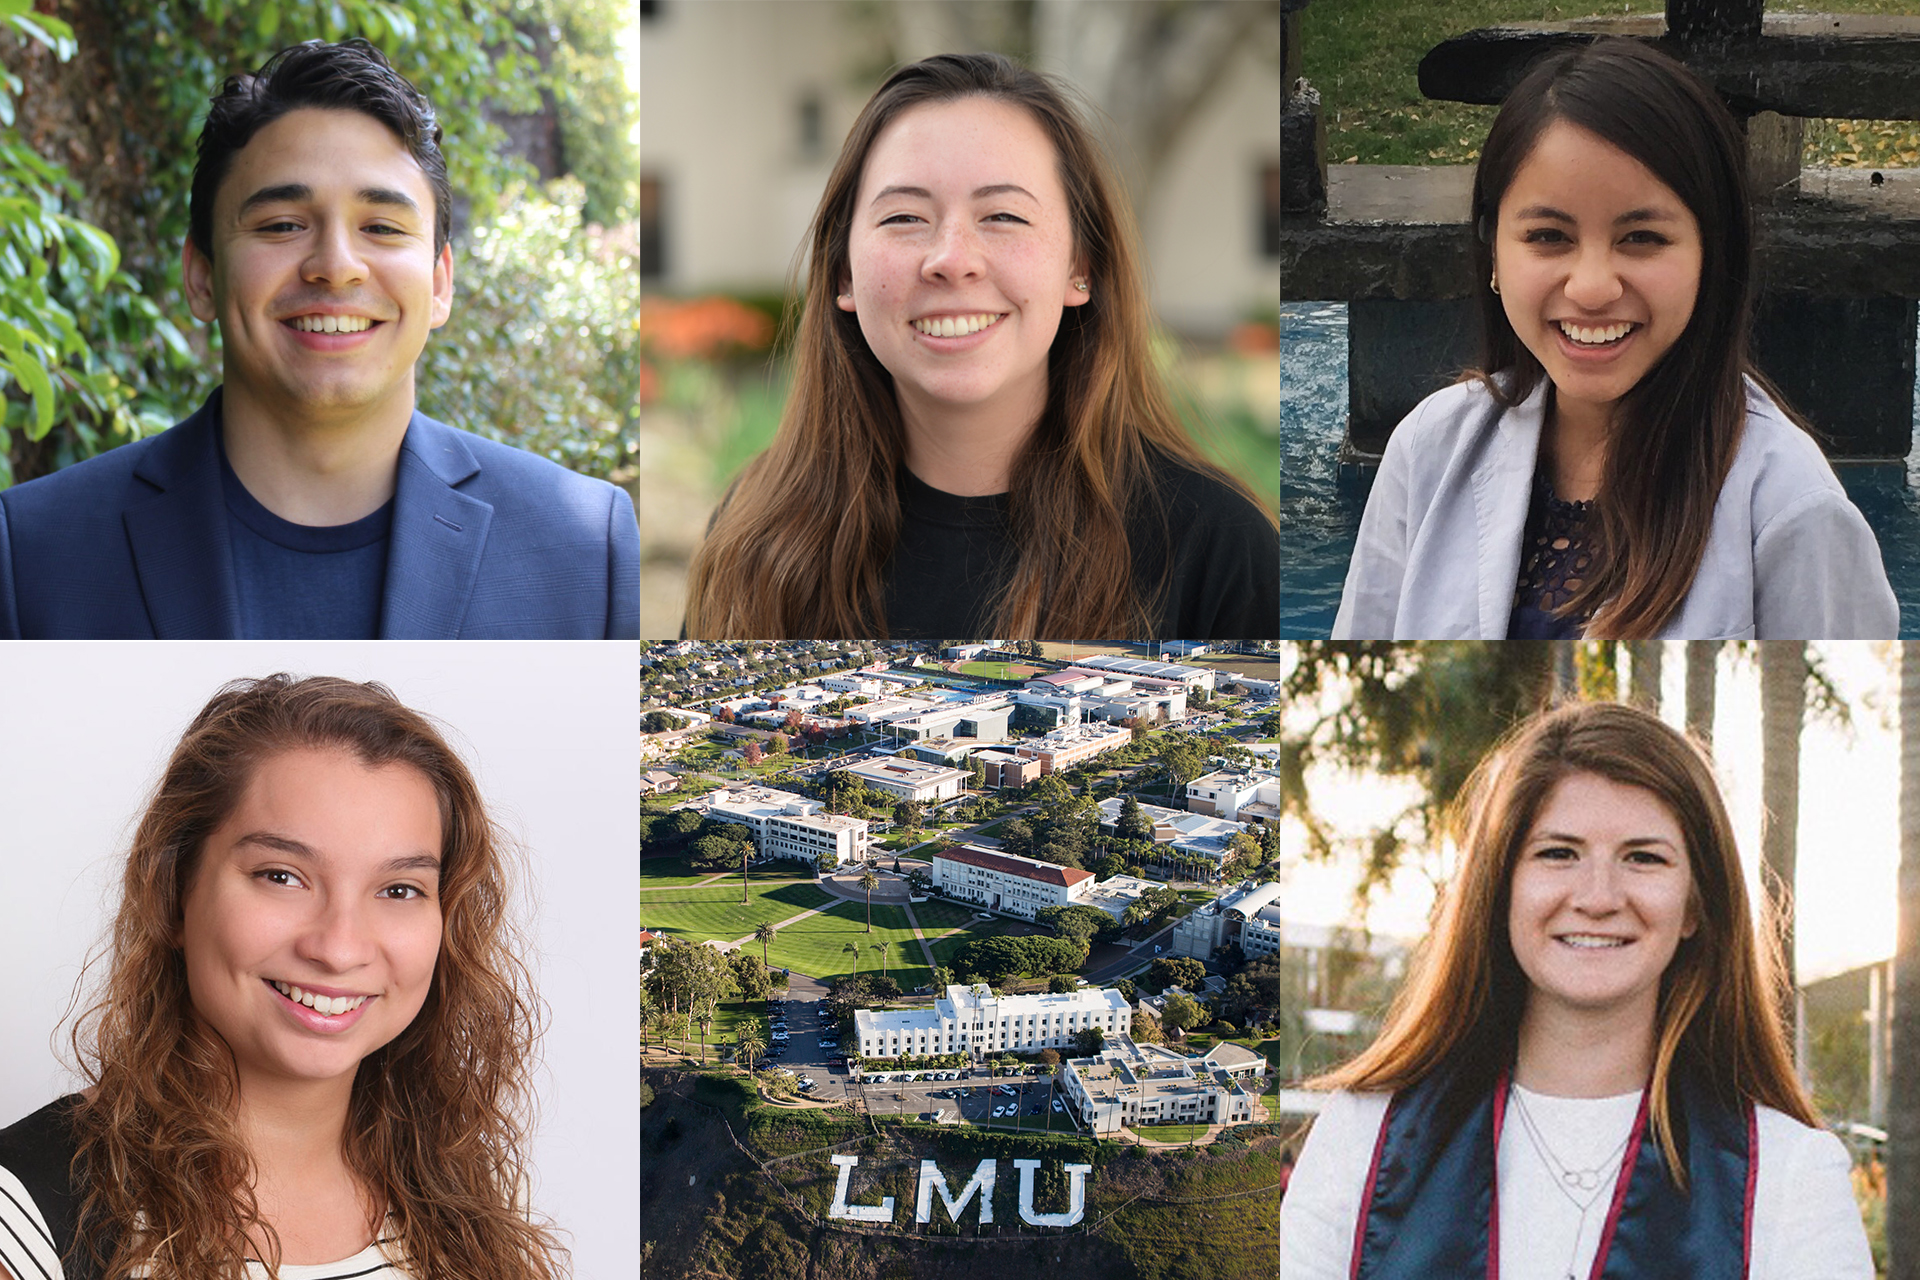 Five LMU graduates awarded Fulbright Grants to study and teach English abroad